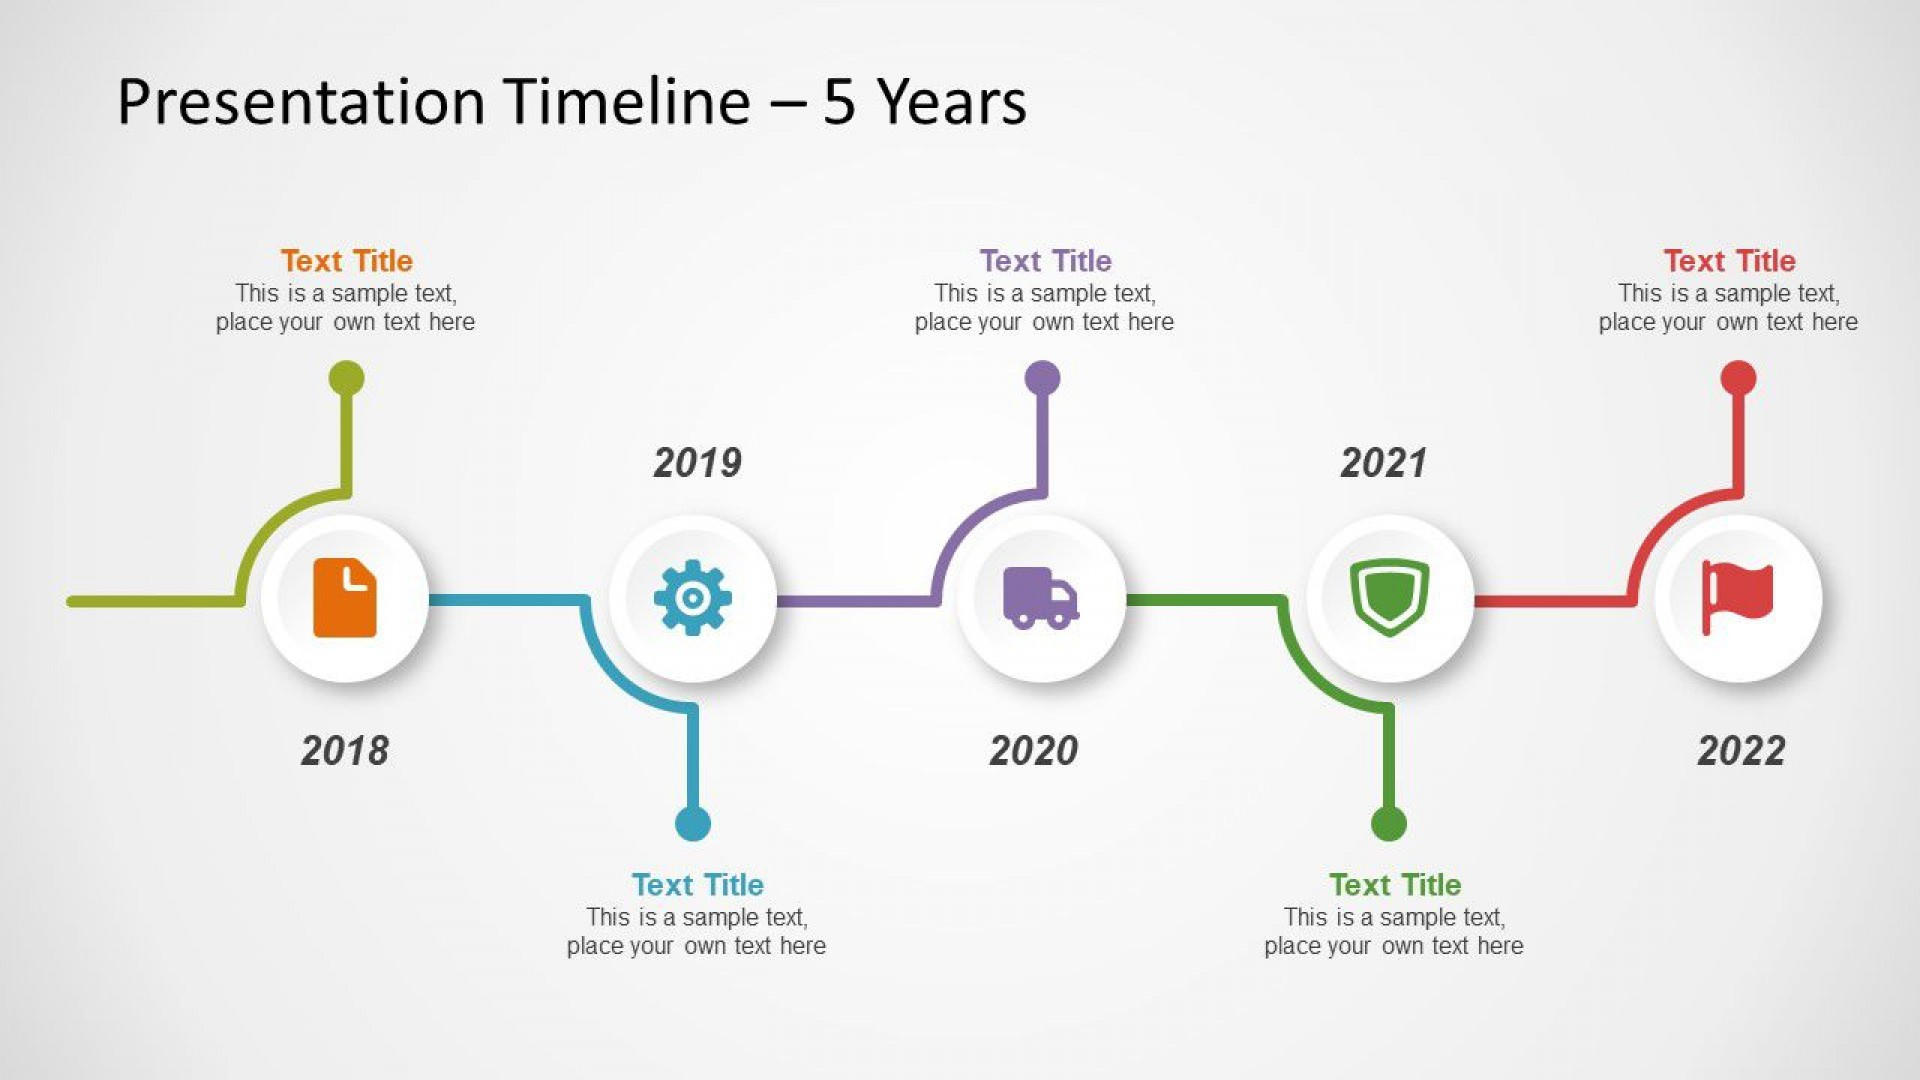 004 Stirring Timeline Infographic Template Powerpoint Download Picture  Free1920